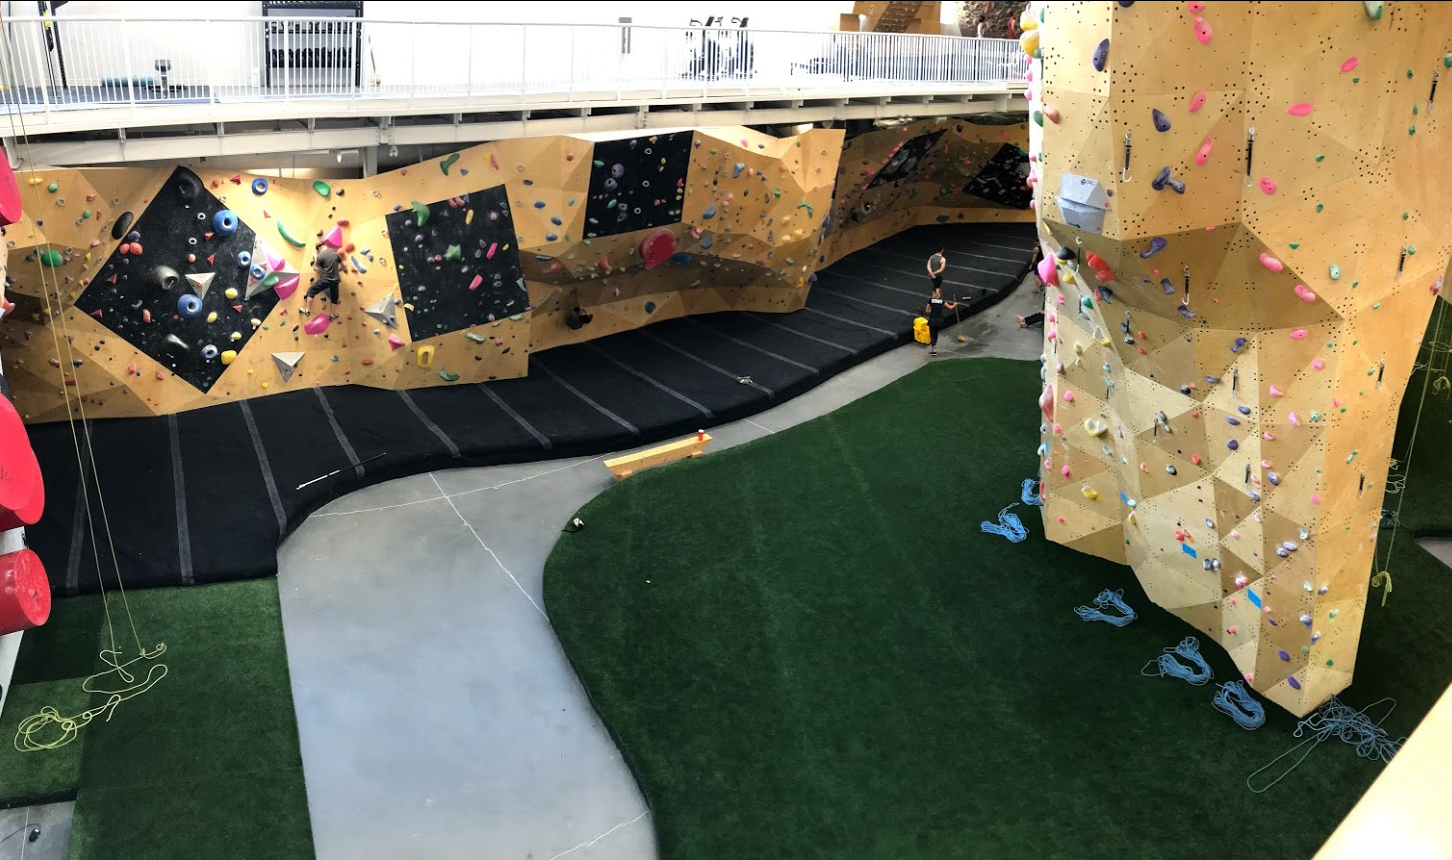 Calgary is also home to numerous specialize private recreational facilities like this major climbing centre. Facilities like this didn't exist in Calgary or any Canadian city 40 years ago.